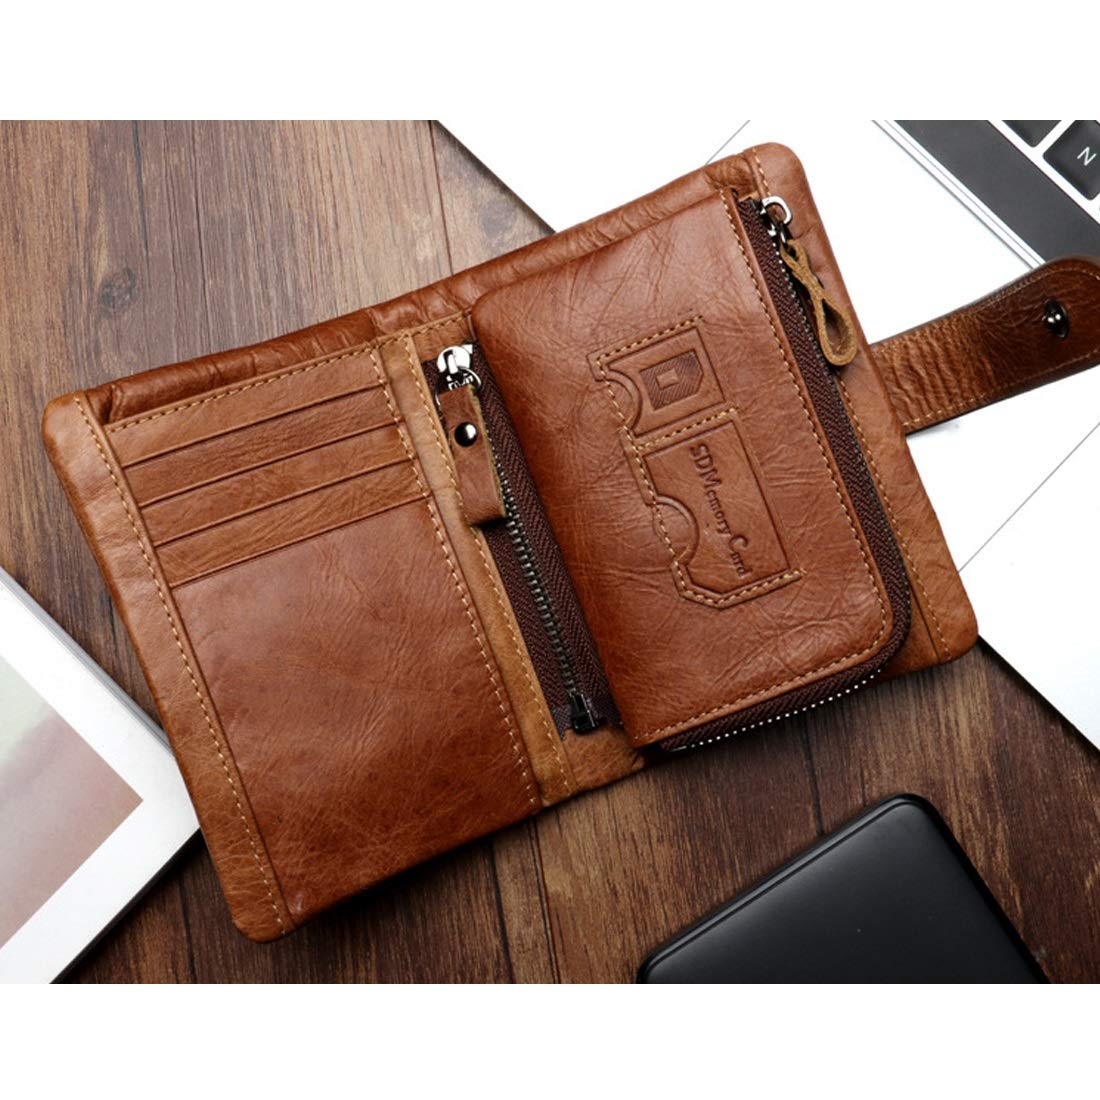 Color : Brown CEFULTY Short Wallet Mens Folding Mini Wallet RFID Magnetic Skimming Prevention Large Capacity Multi Function